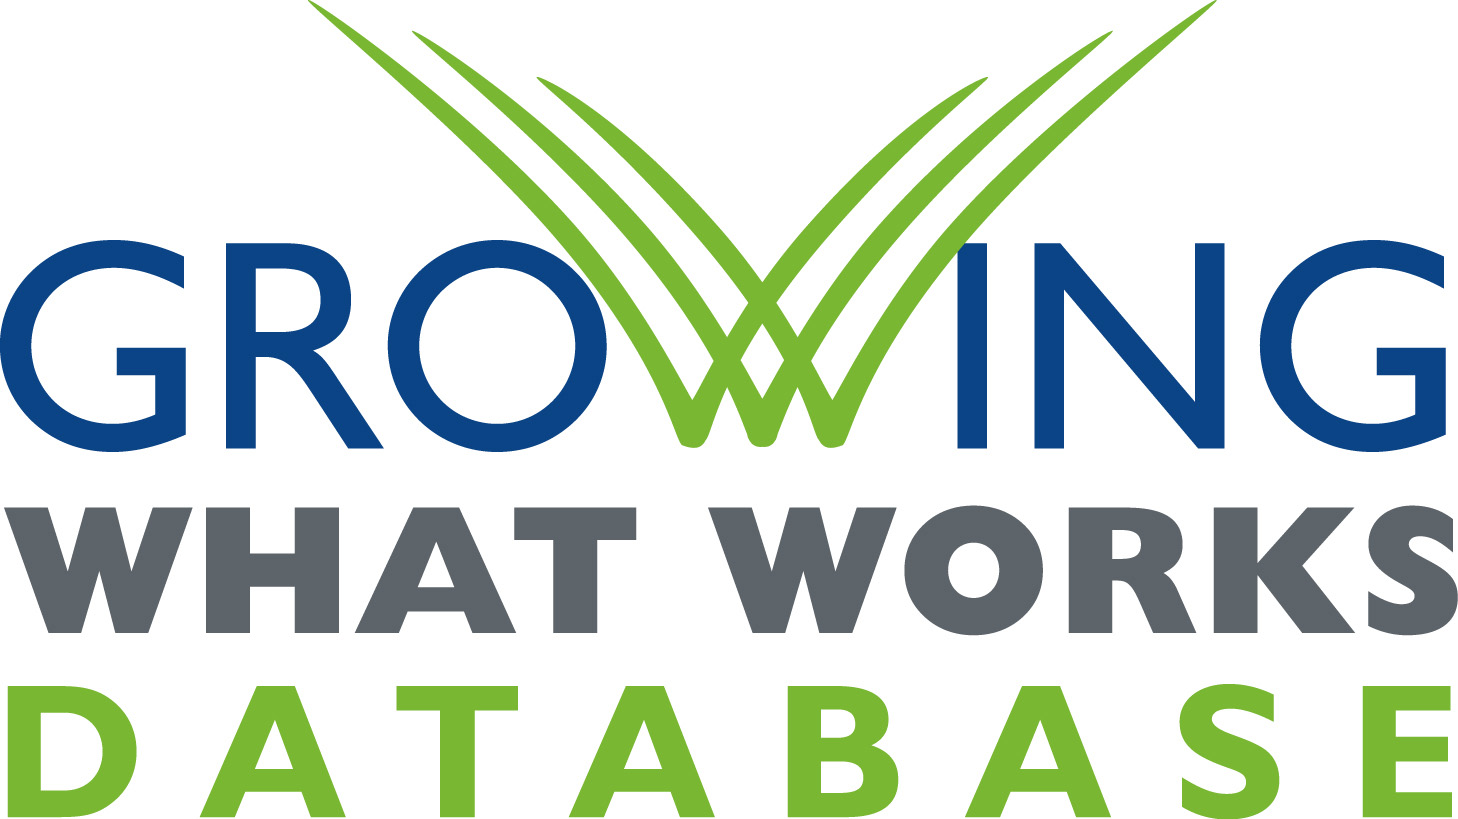 Growing What Works Database